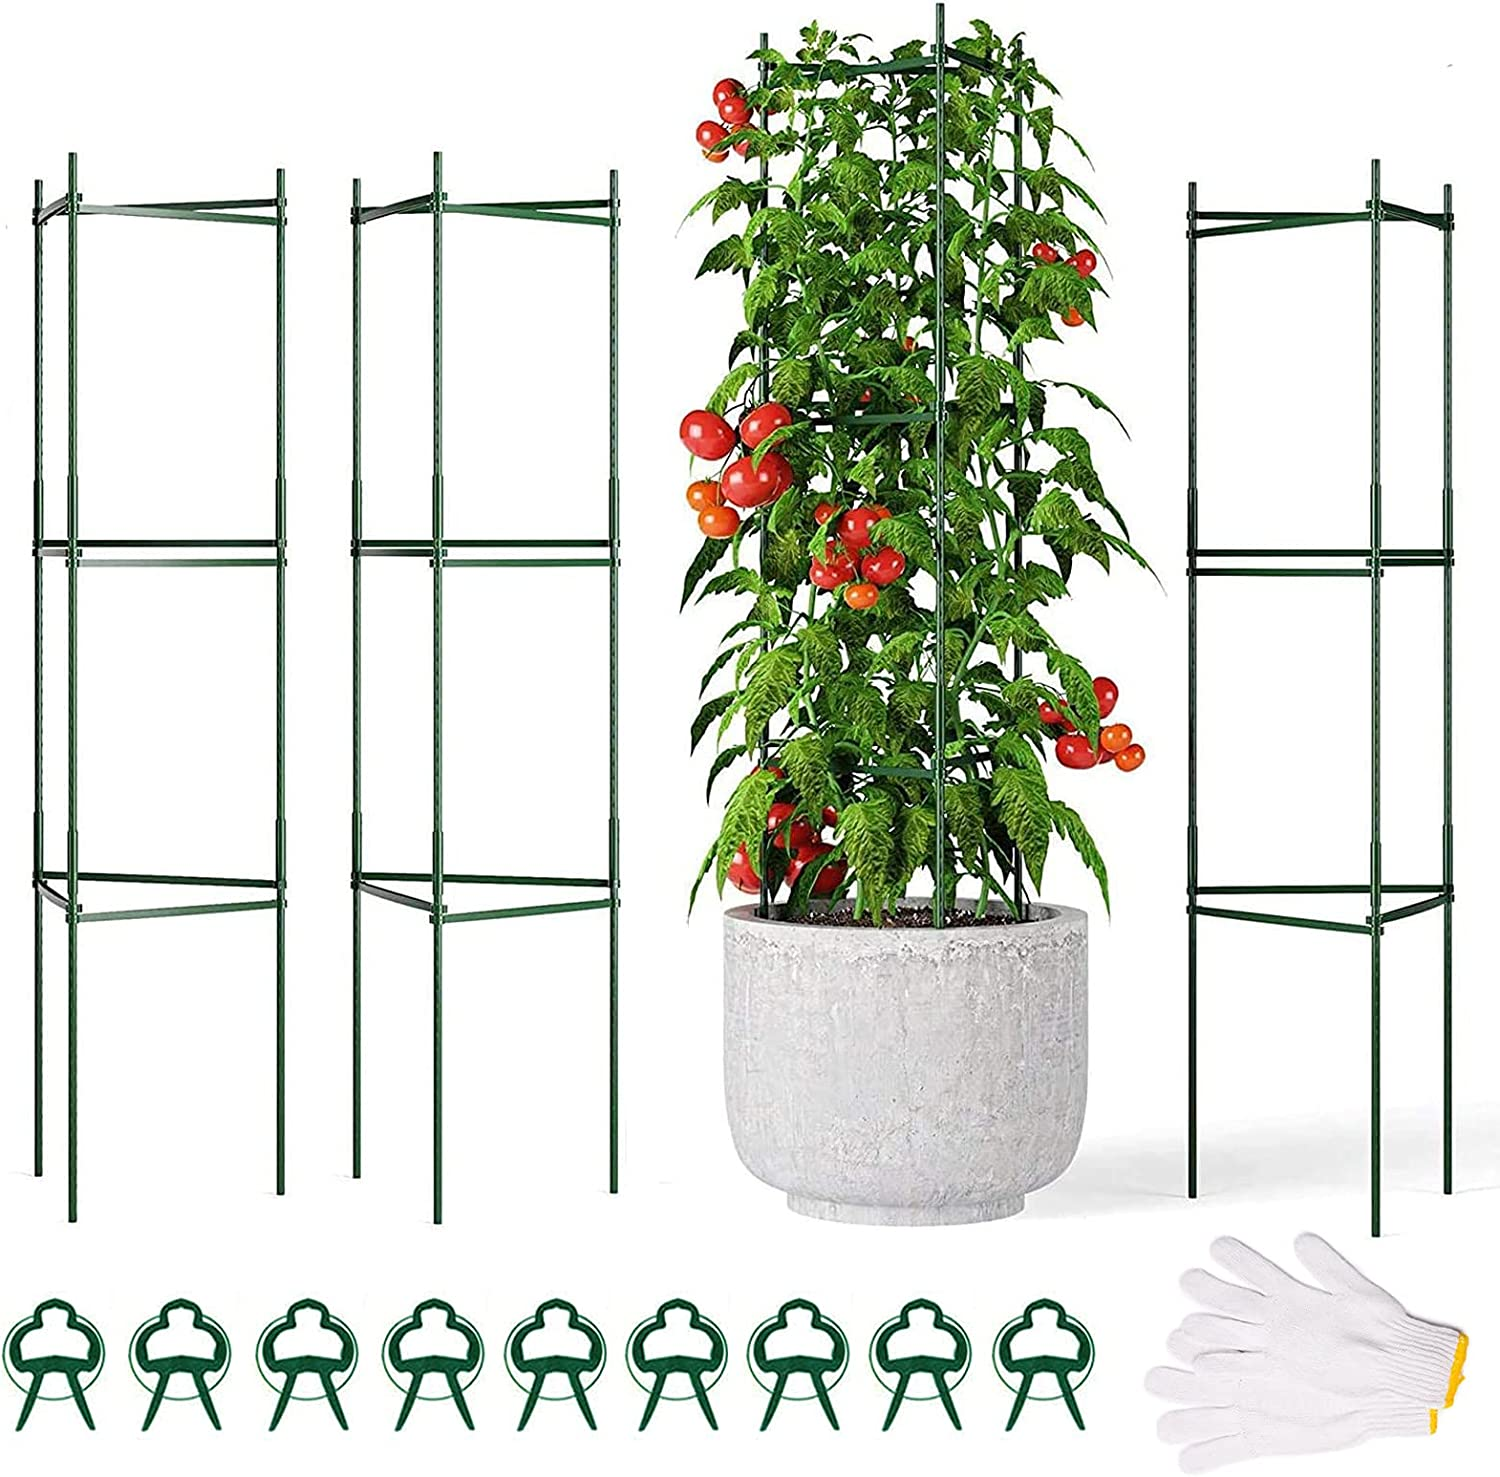 Buteafly latest Tomato Cage 3 Pack Plant with Support Fresno Mall Clips Cages 9Pcs